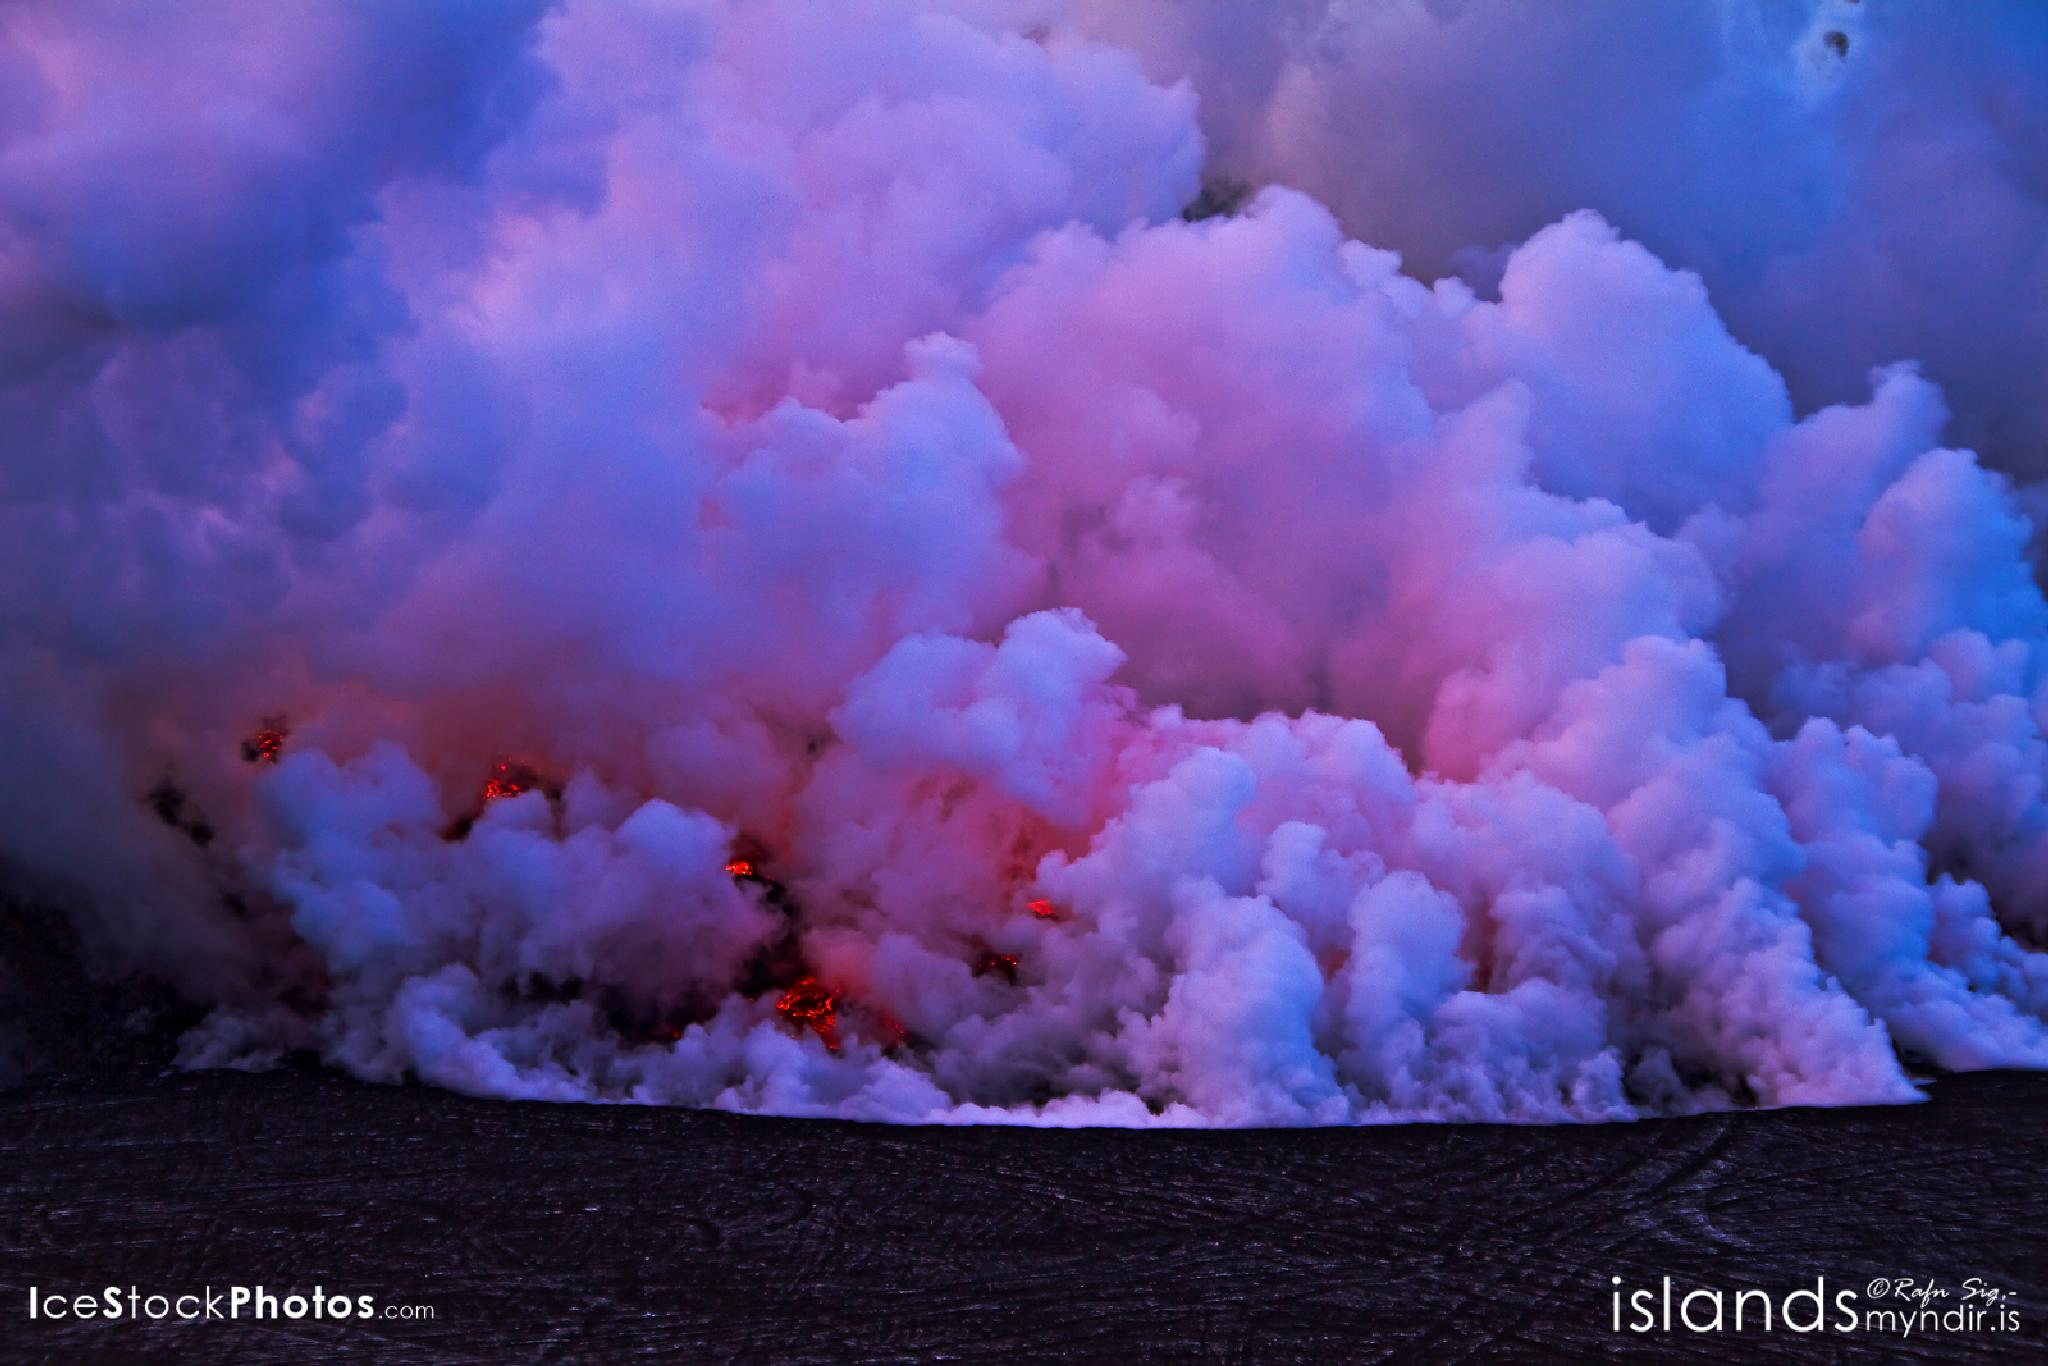 """""""And the Lava keeps coming"""" - #Iceland by Rafn Sig,-  @ Discover Wild Iceland.com"""